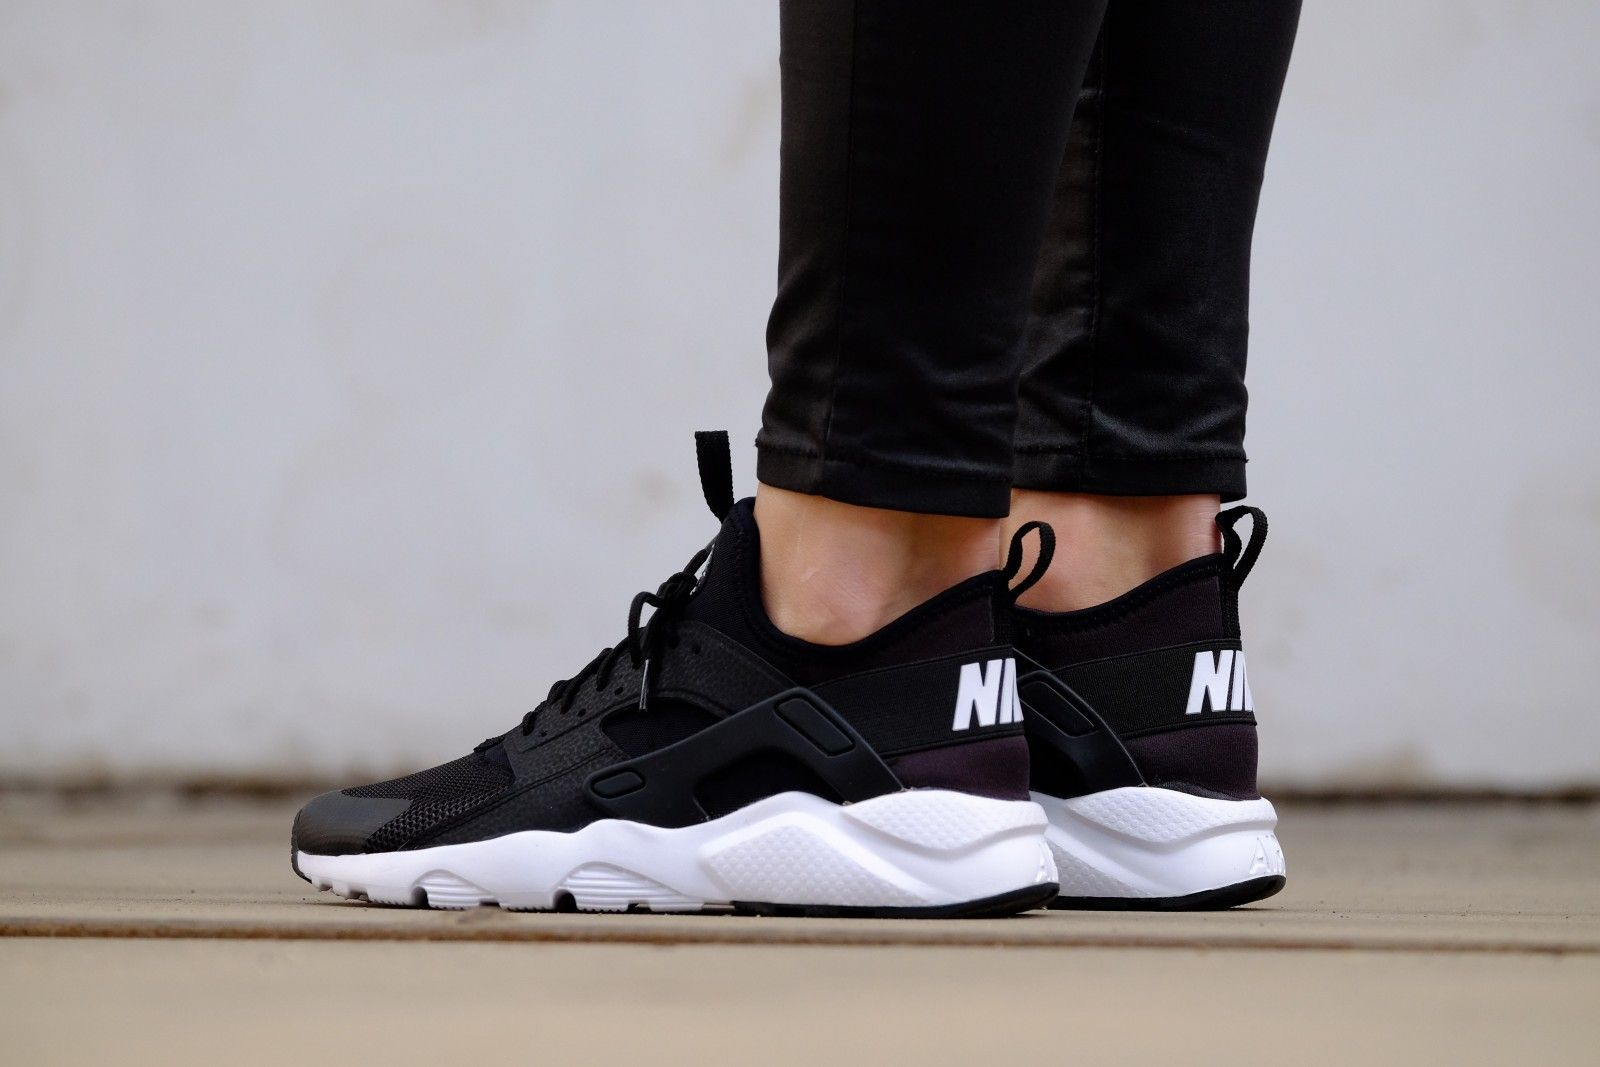 uk availability 88450 a5117 Nike Air Huarache Run Ultra GS Black  White - 847569-002